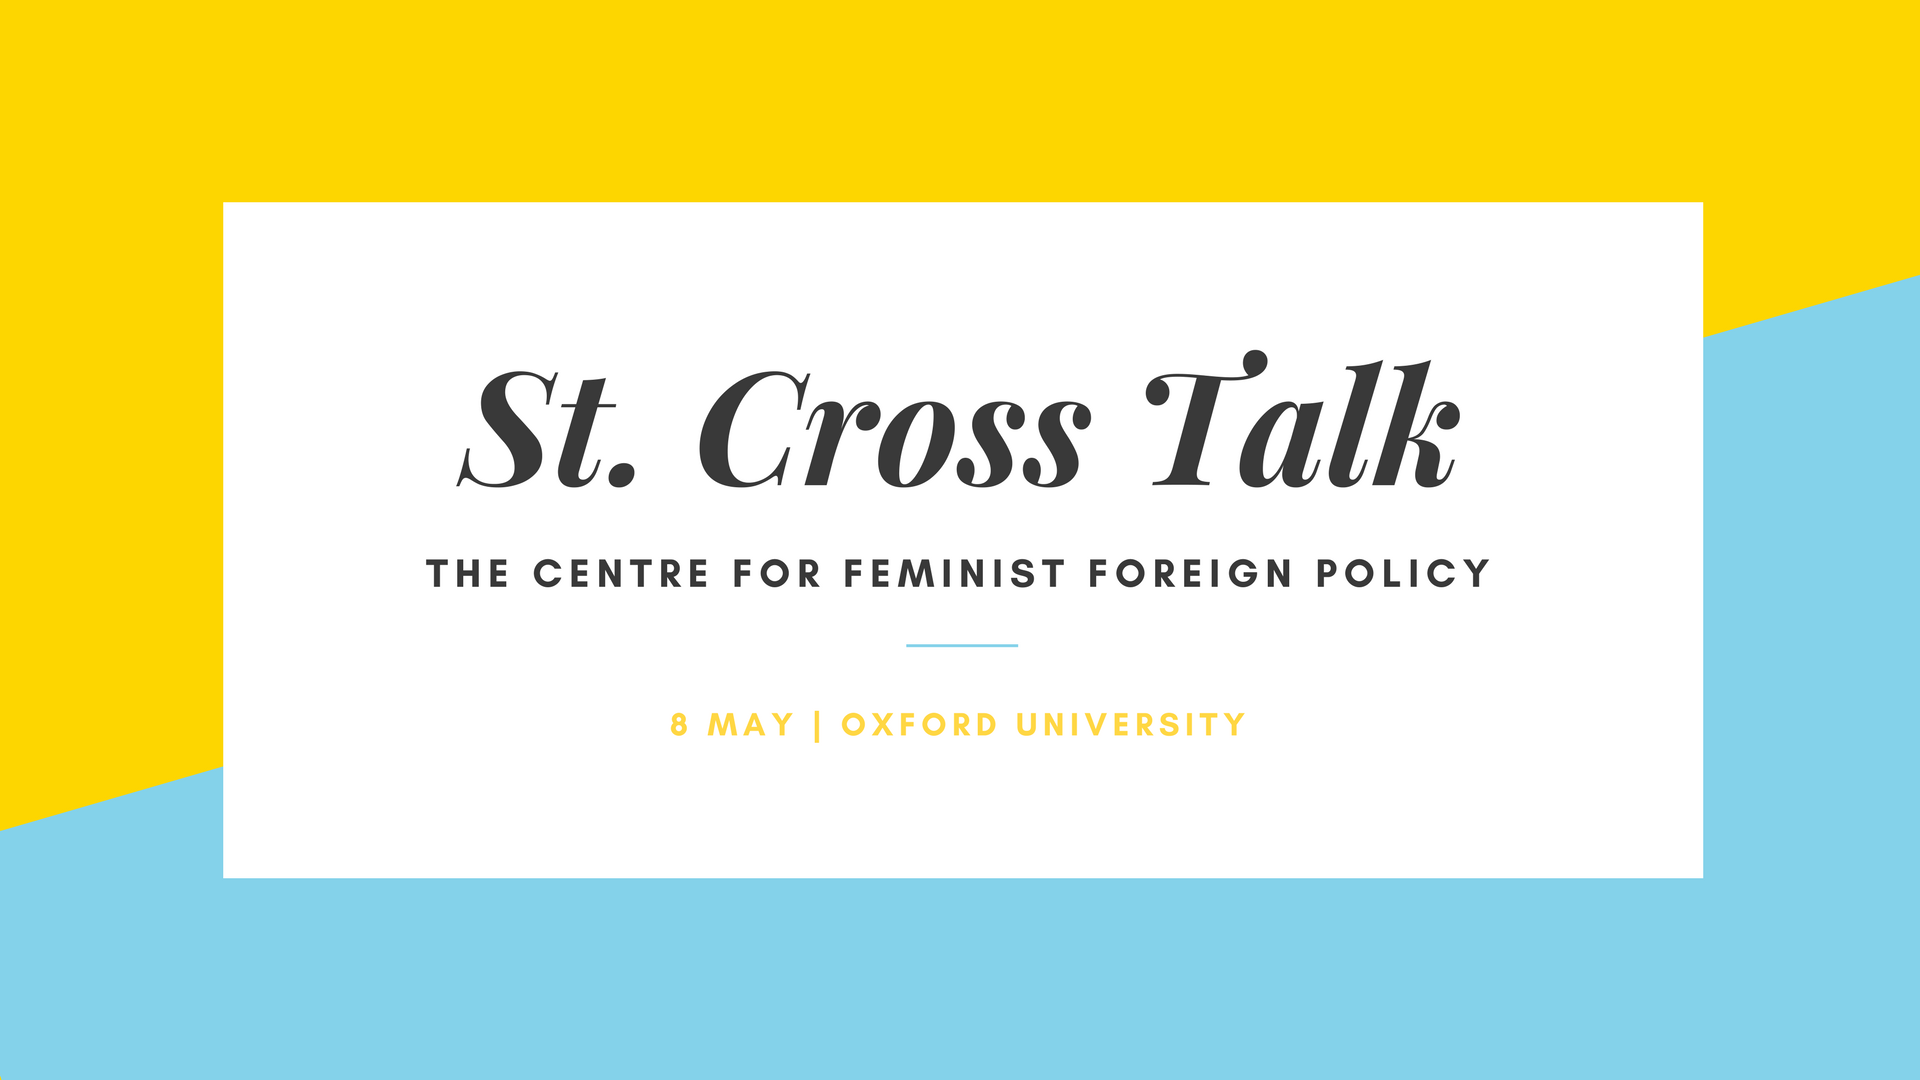 Oxford University St. Cross Talk Centre for Feminist Foreign Policy